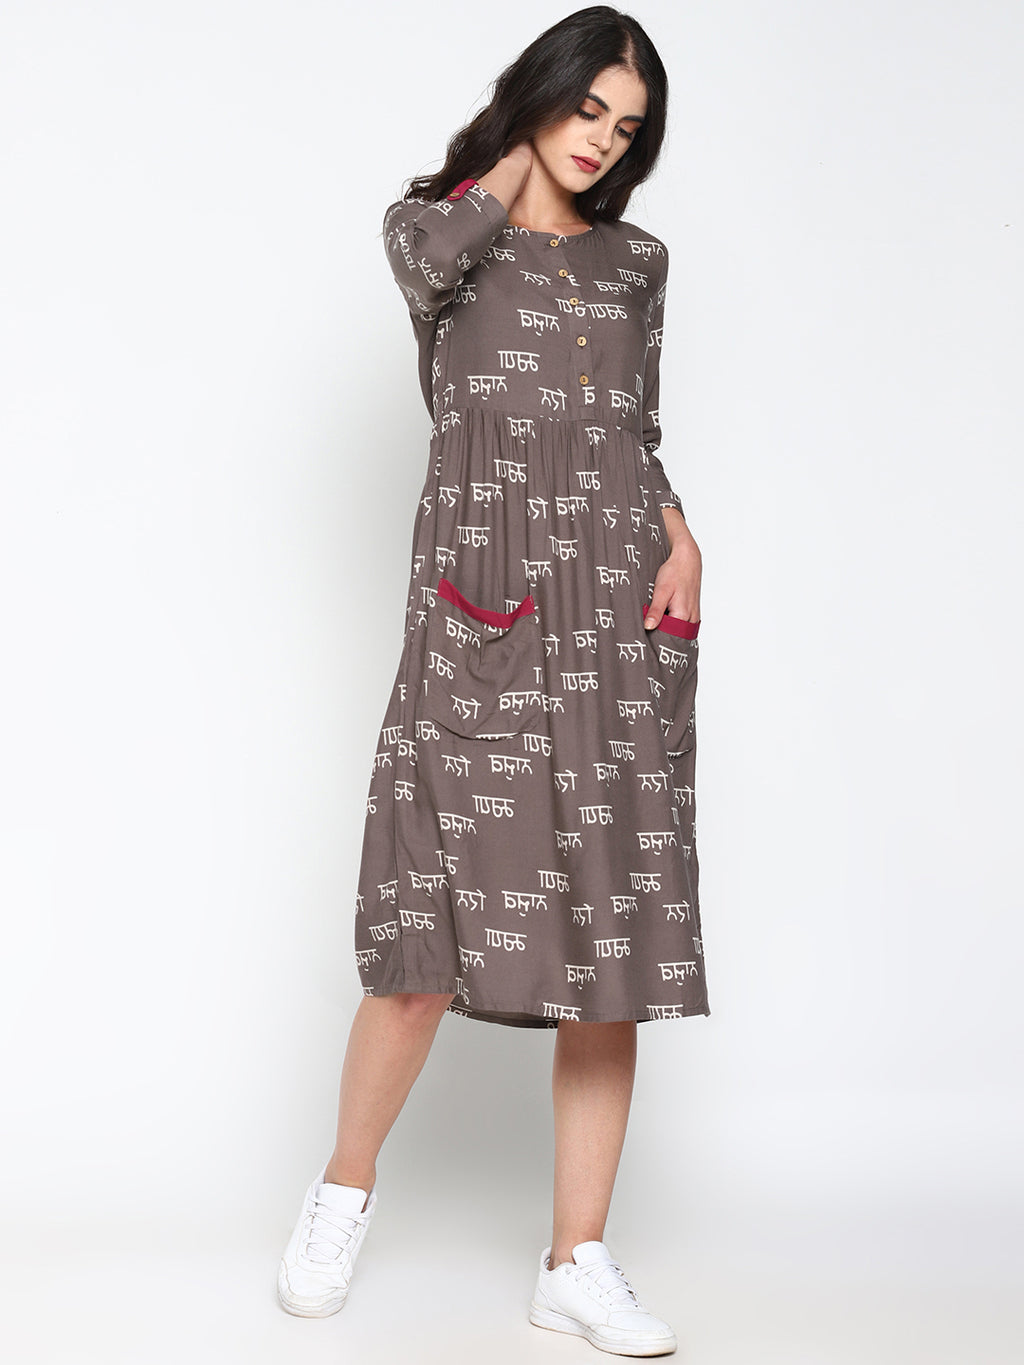 Calligraphy Printed Dress